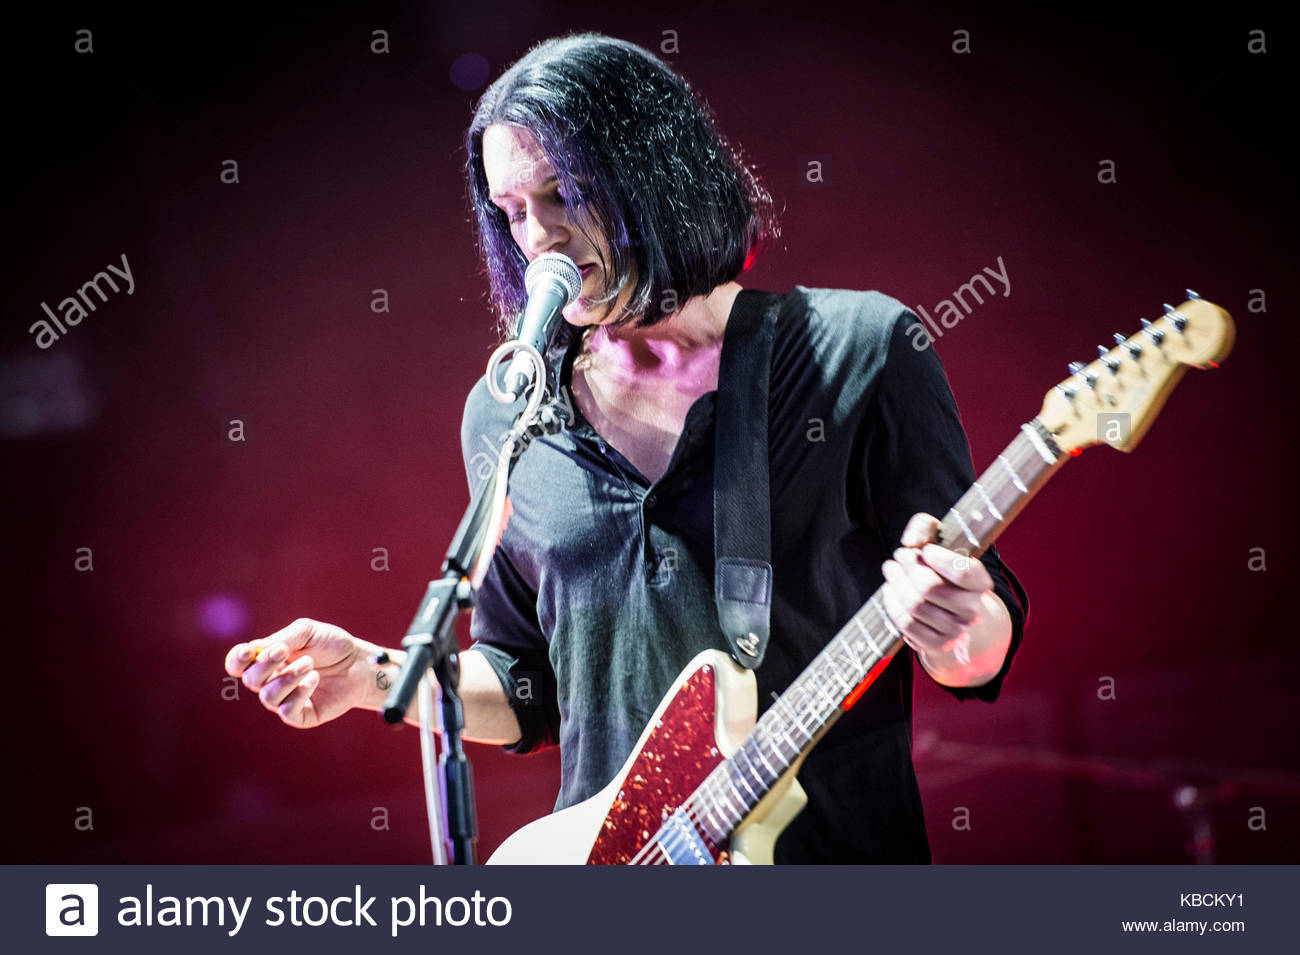 Brian Molko Placebo Pictures Of Performing Live At City Alfa Romeo Sound Milano In Milan On July 22 2014 Ippodromo Del Galoppo